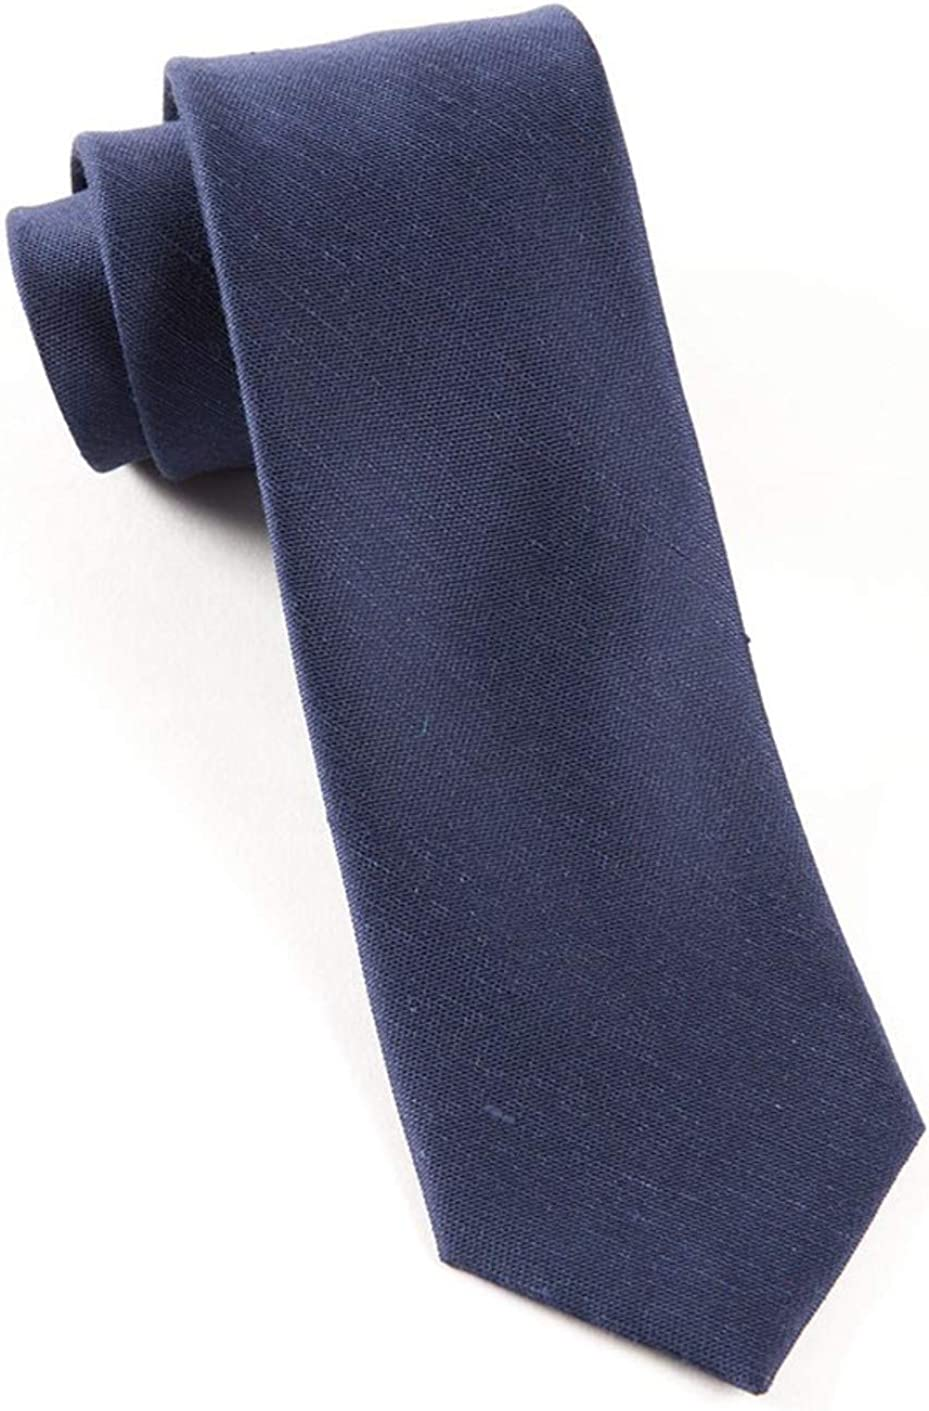 The Tie Bar Linen Blend Sand Wash Solid Navy Boys Tie